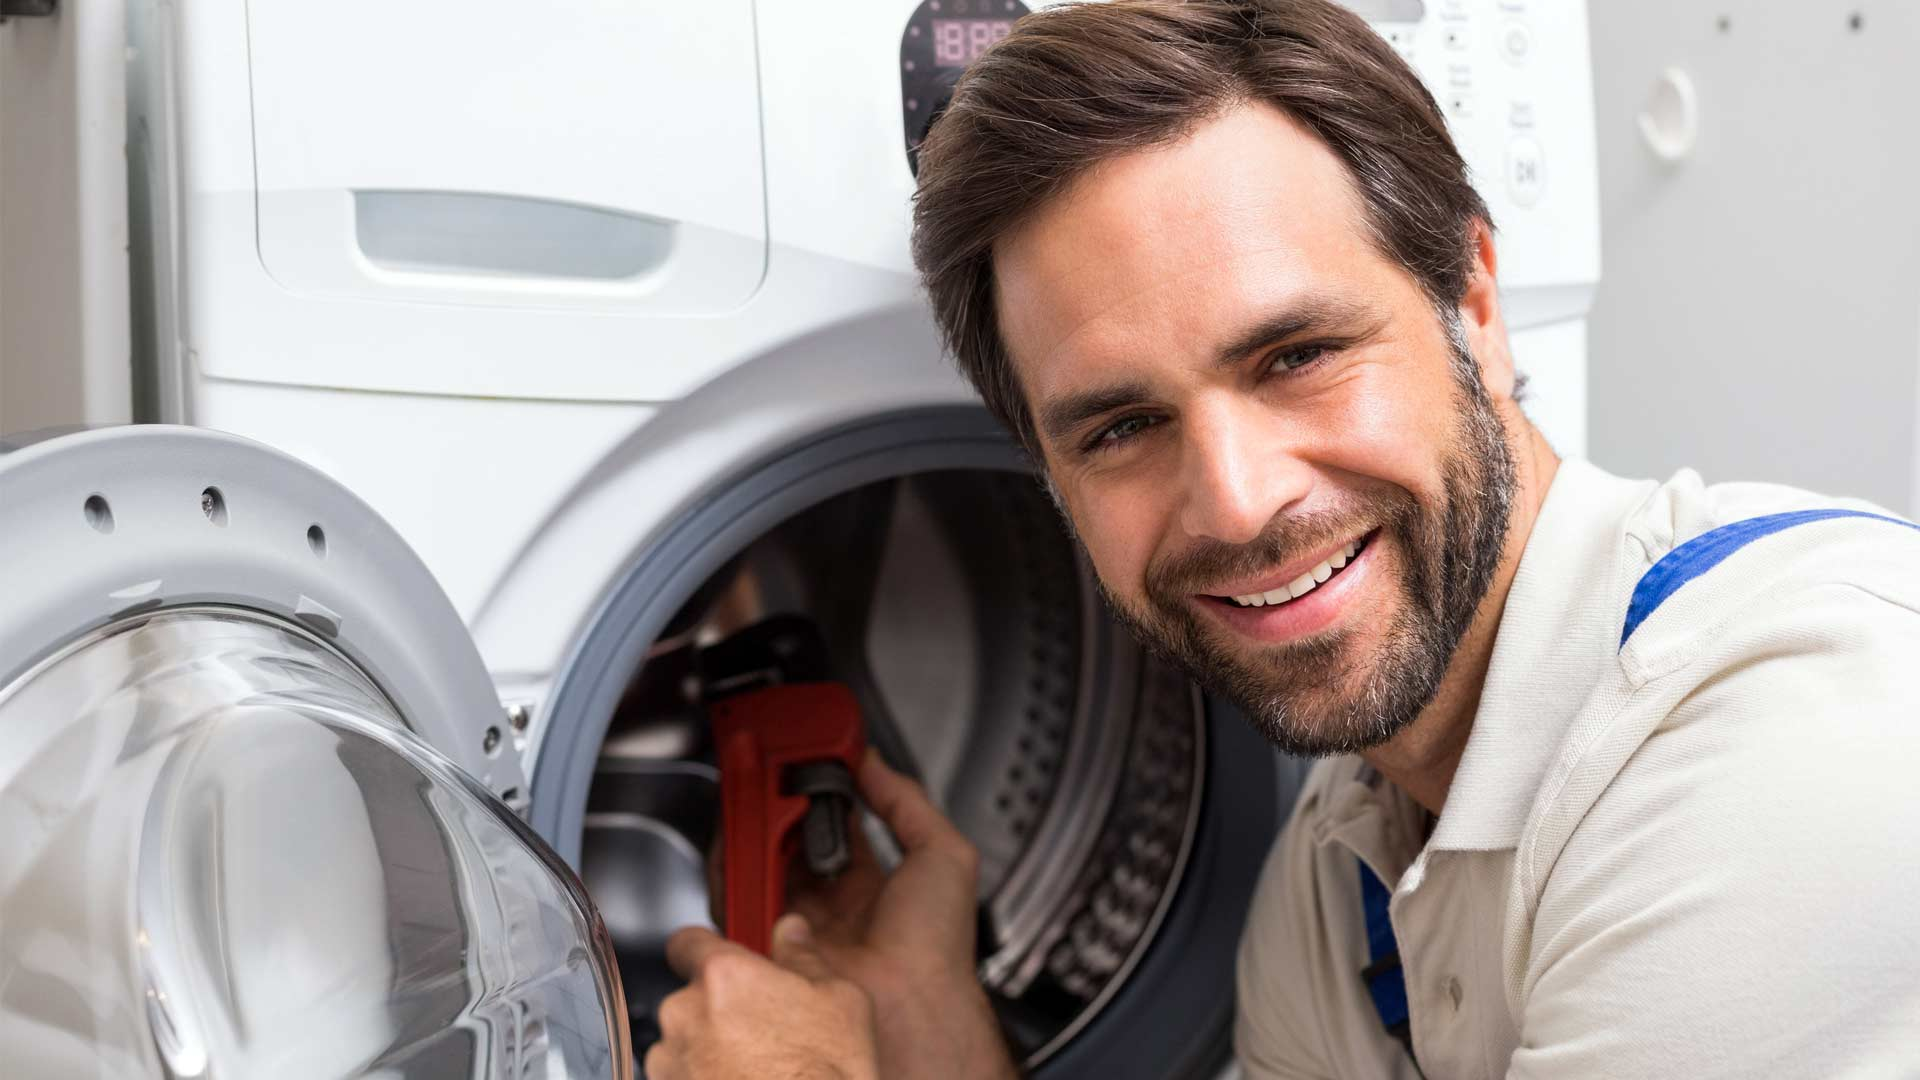 Washer Dryer Repair in La Canada. Tel: (800) 530-7906